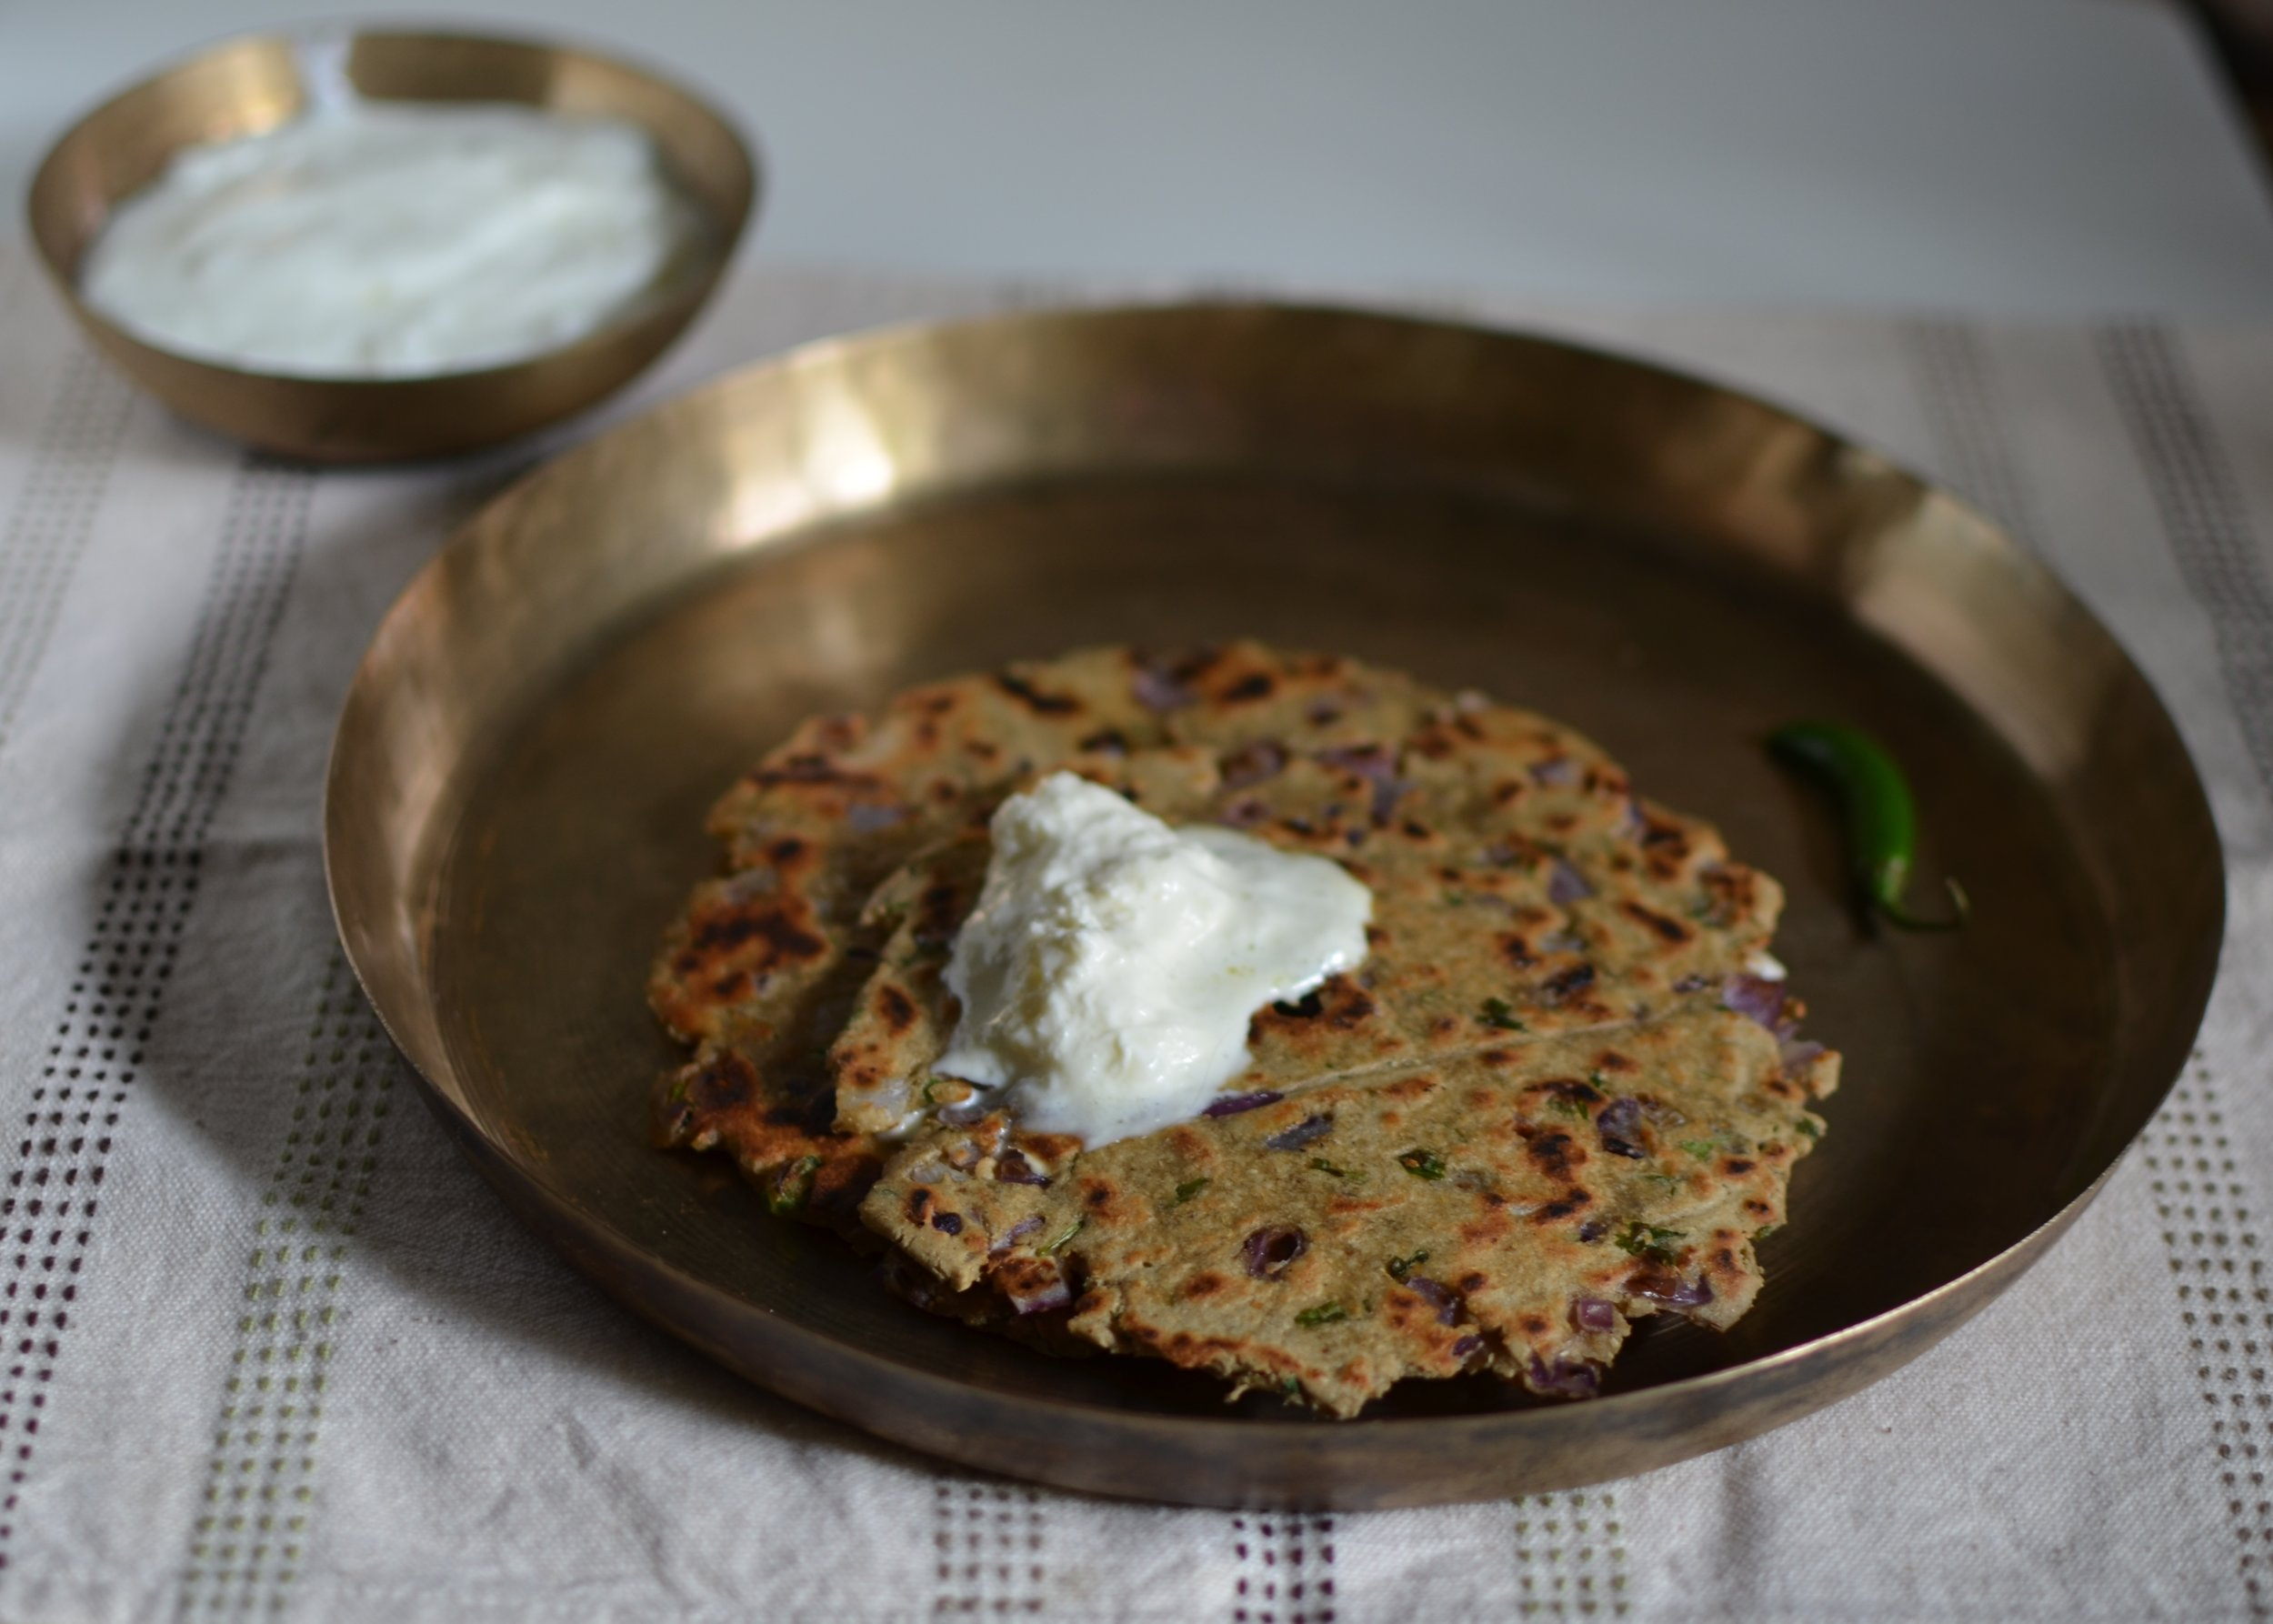 maharashtrian thalipeeth recipe